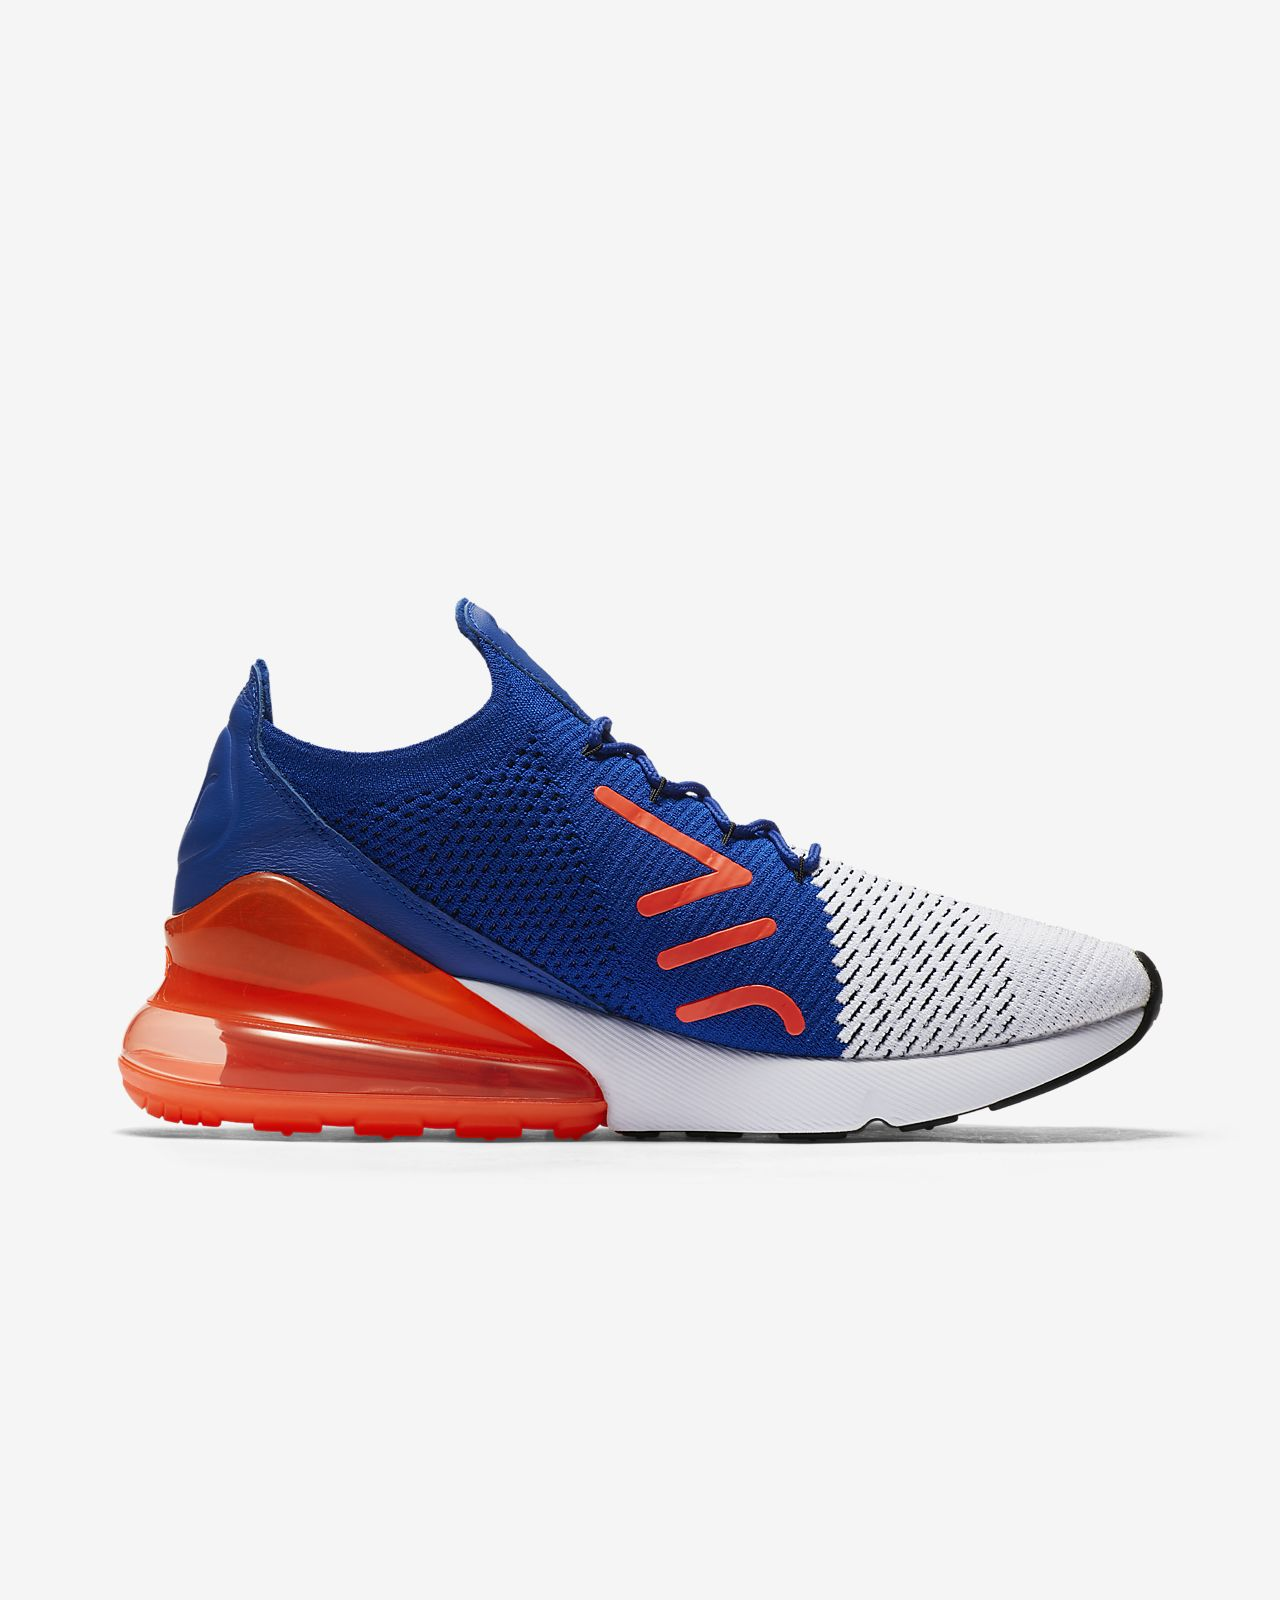 f30f4ff506084 Chaussure Nike Air Max 270 Flyknit pour Homme. Nike.com CA